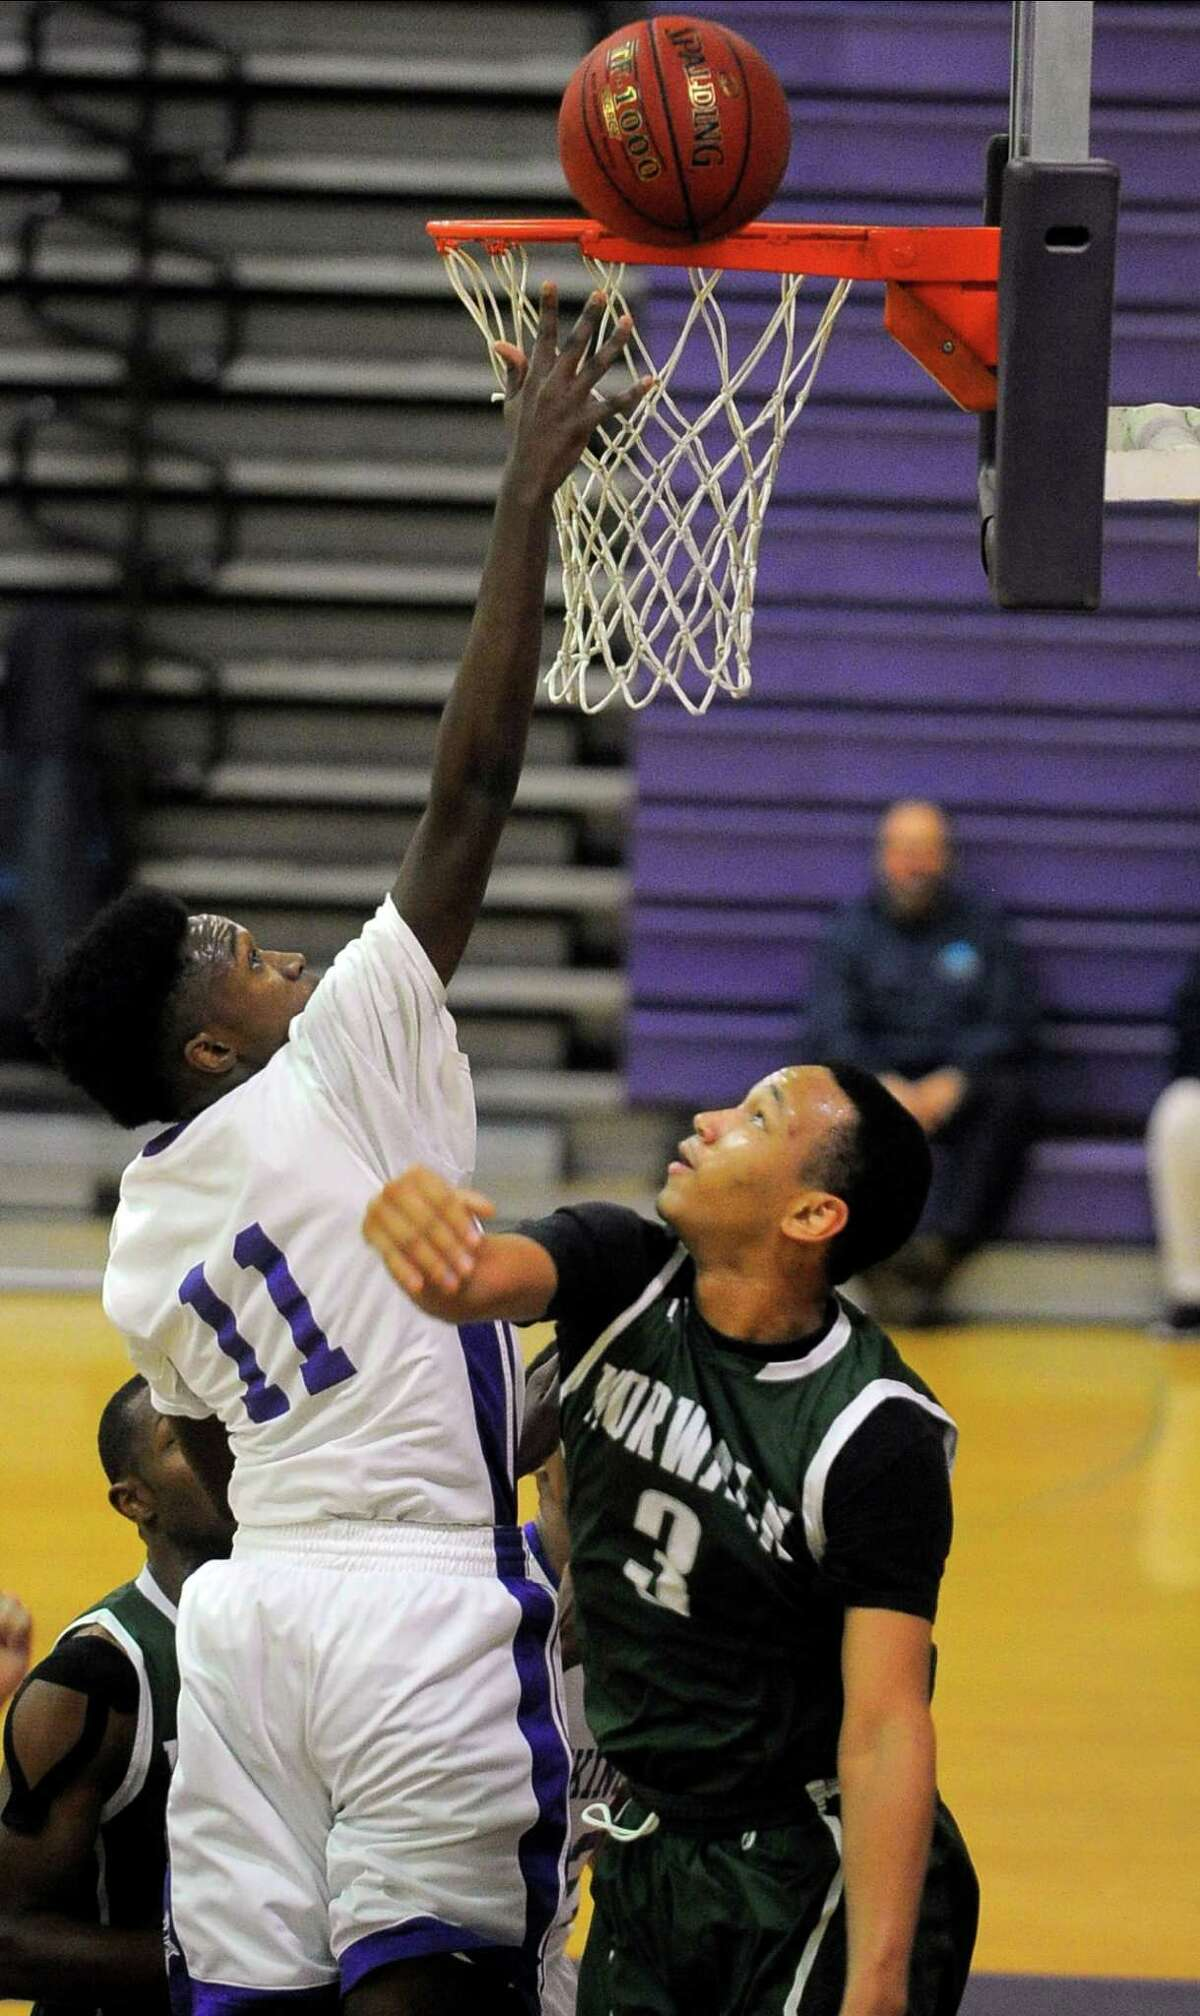 Westhill center Lenold August (11) taps the ball in over Norwalk forward Alex Jerome (3) in the first half of a FCIAC boys basketball game in Stamford, Conn. on Feb. 16, 2016. Westhill defeated Norwalk 55-46.